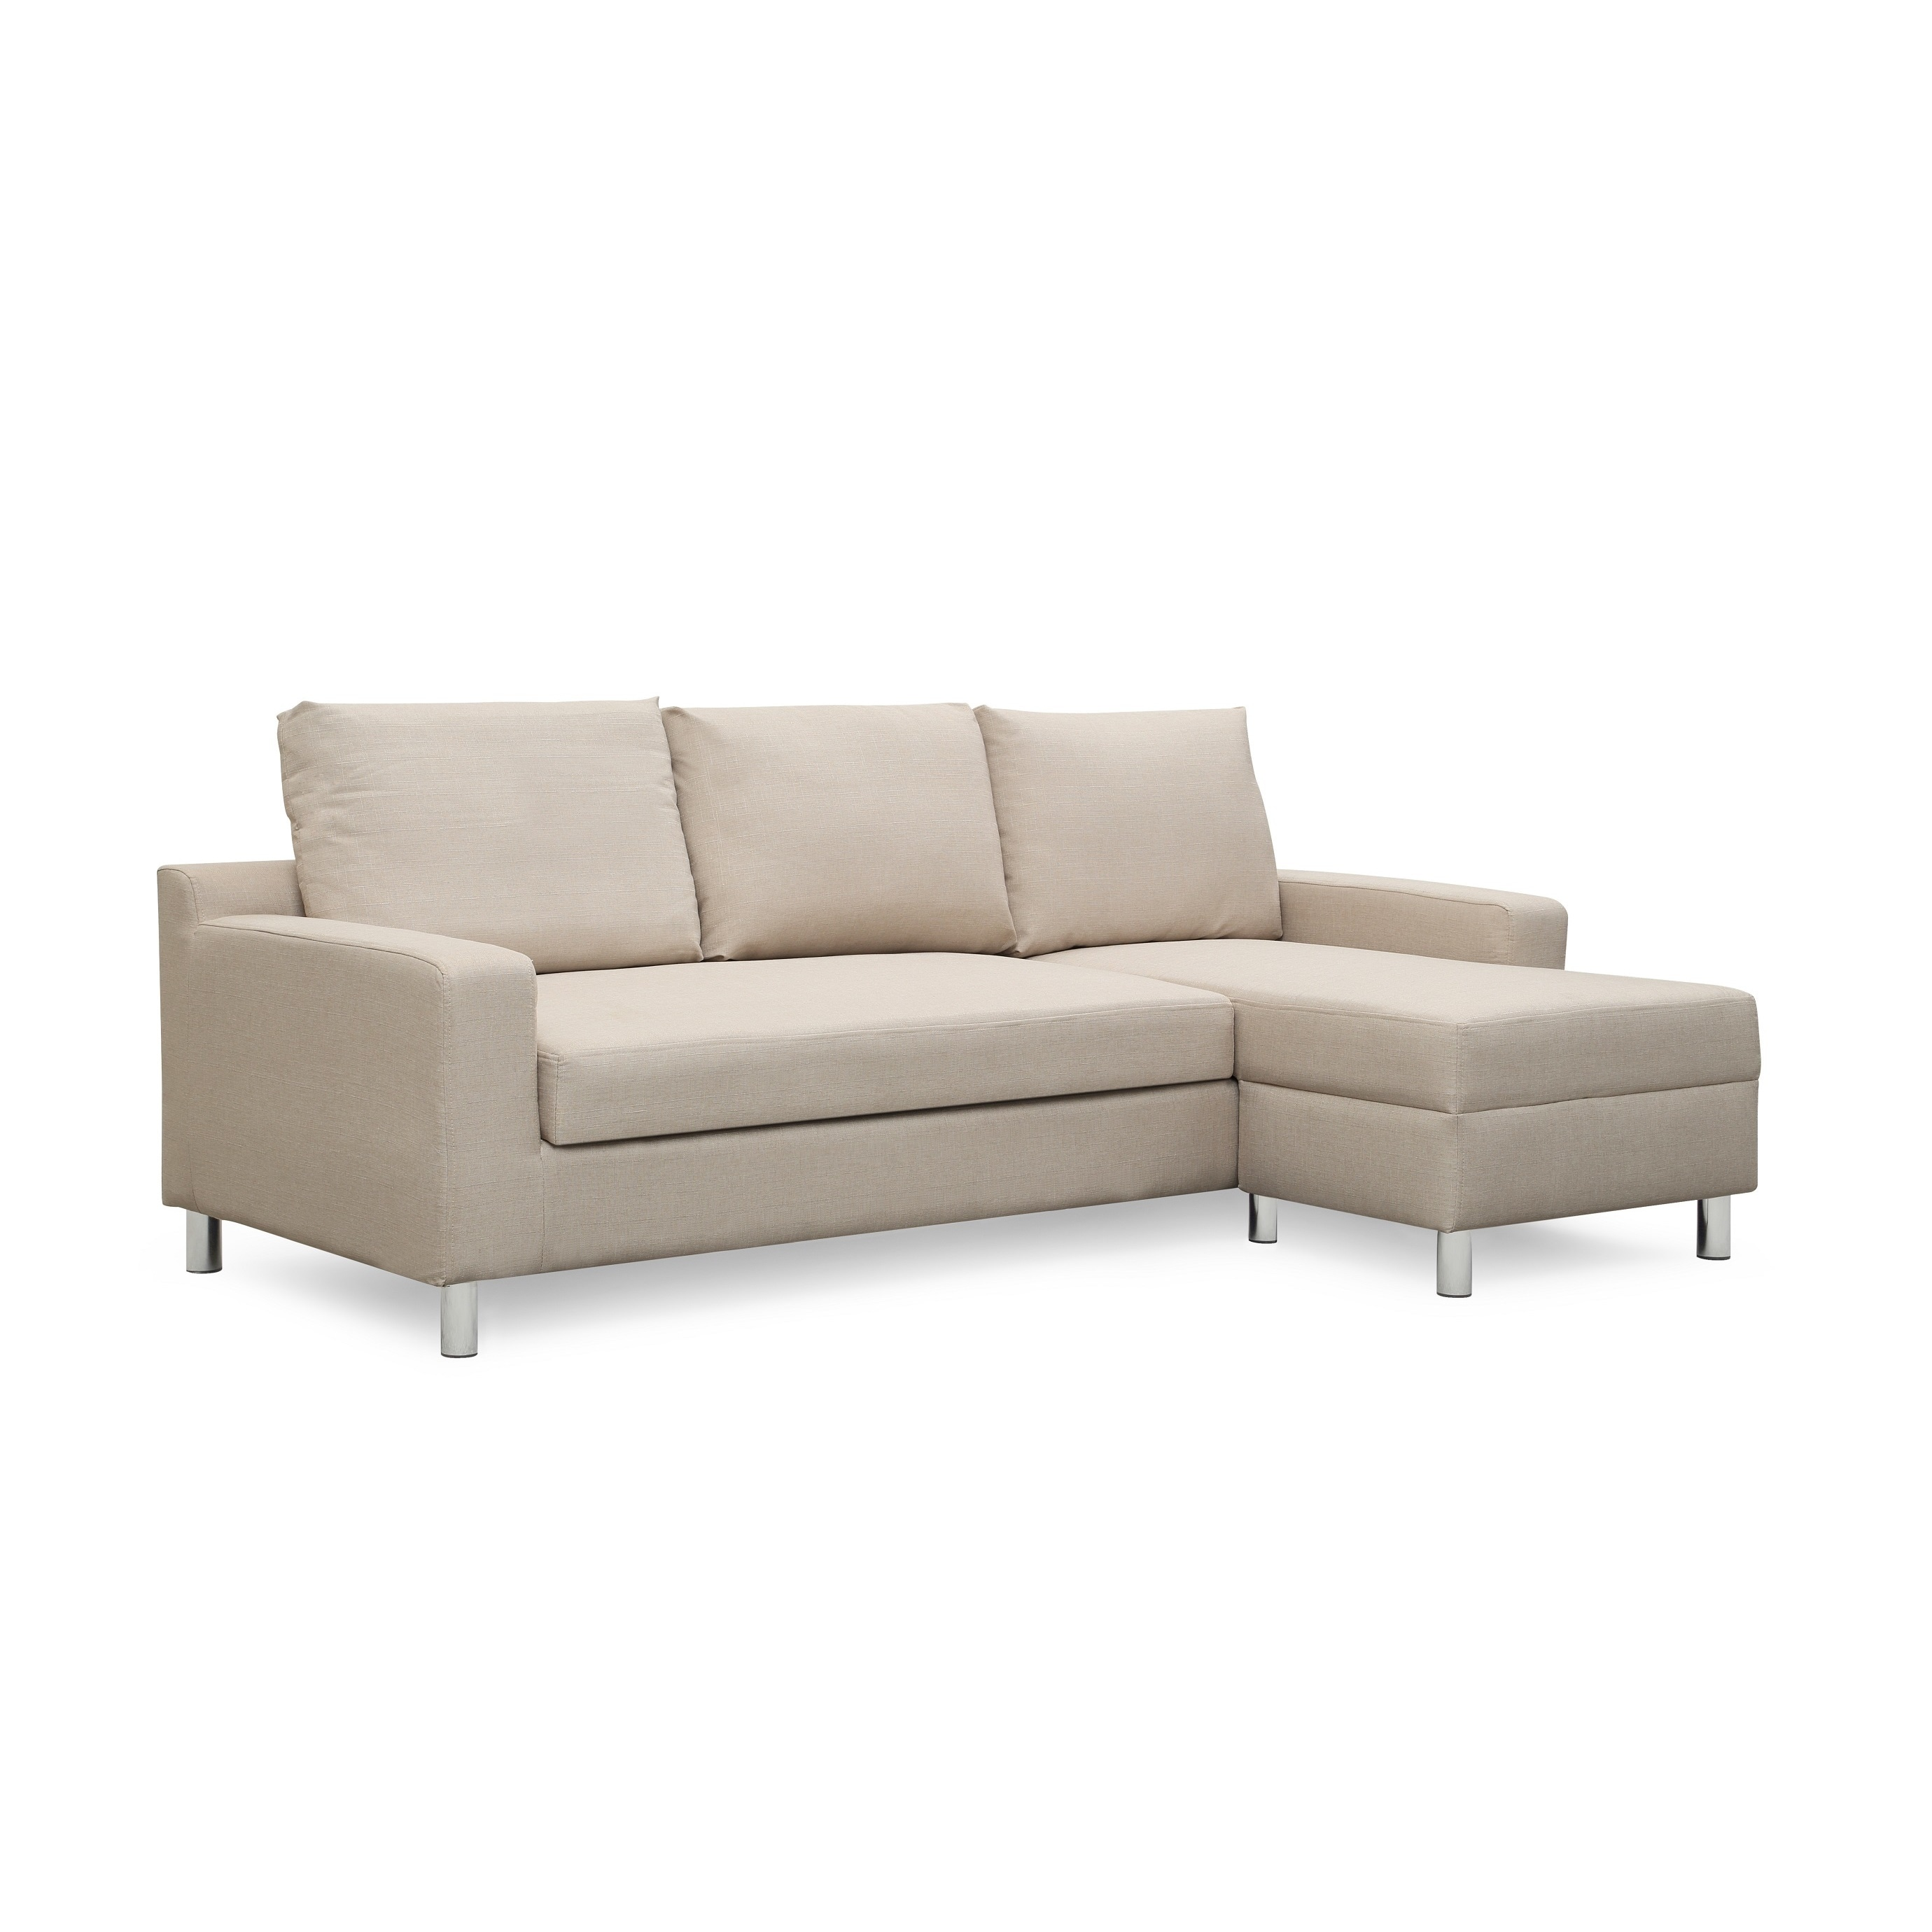 save off 4e237 d2db9 US Pride Furniture Hampton Linen Fabric Sectional Sofa with Pull-out Bed